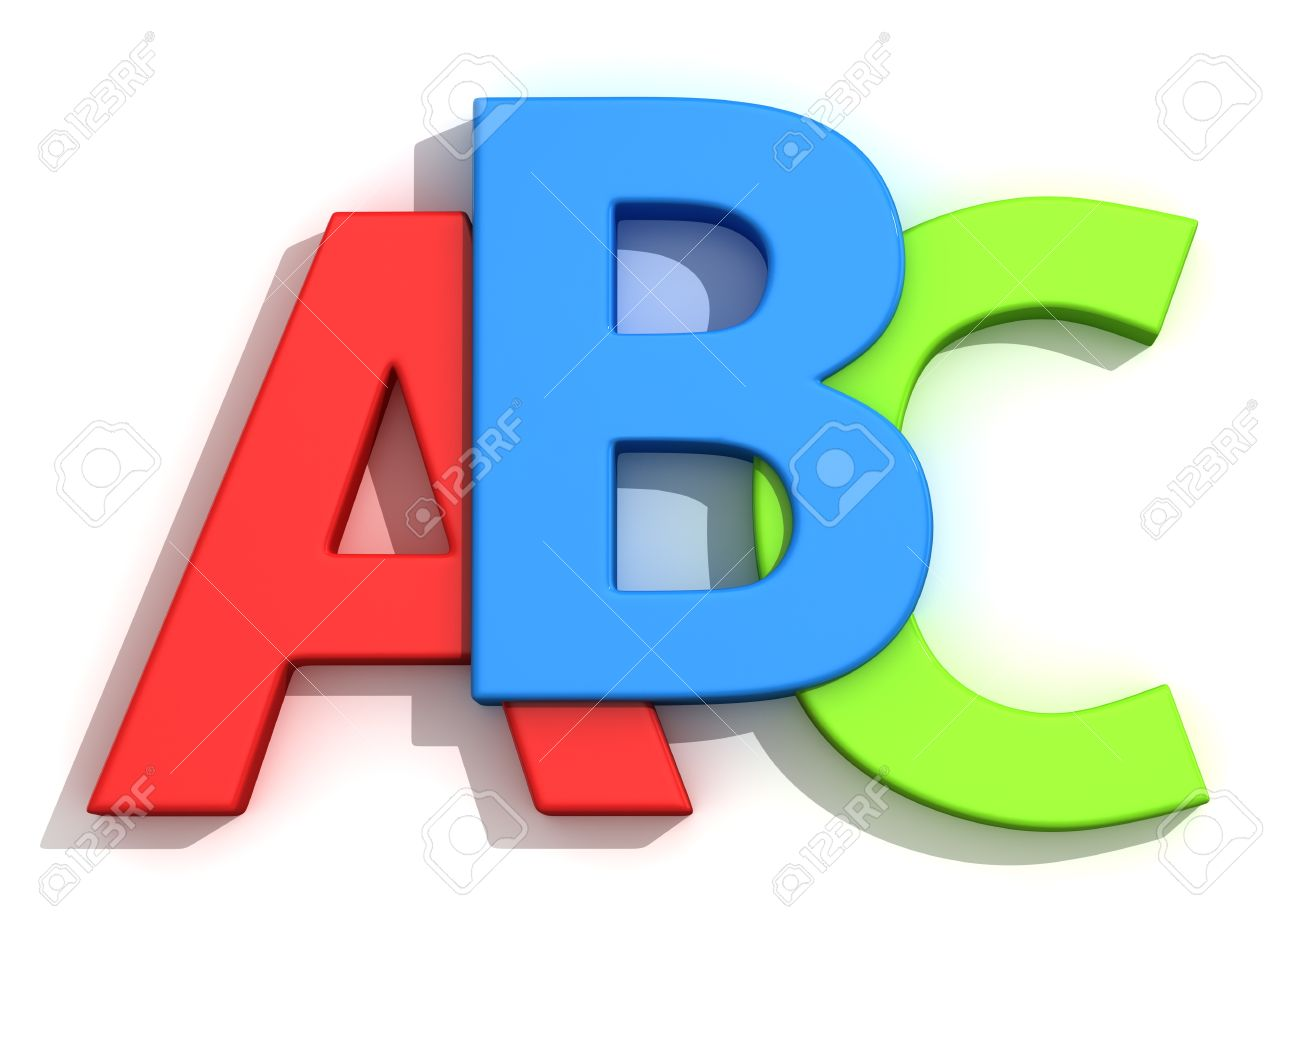 Capital letters A, B, C on the white background.